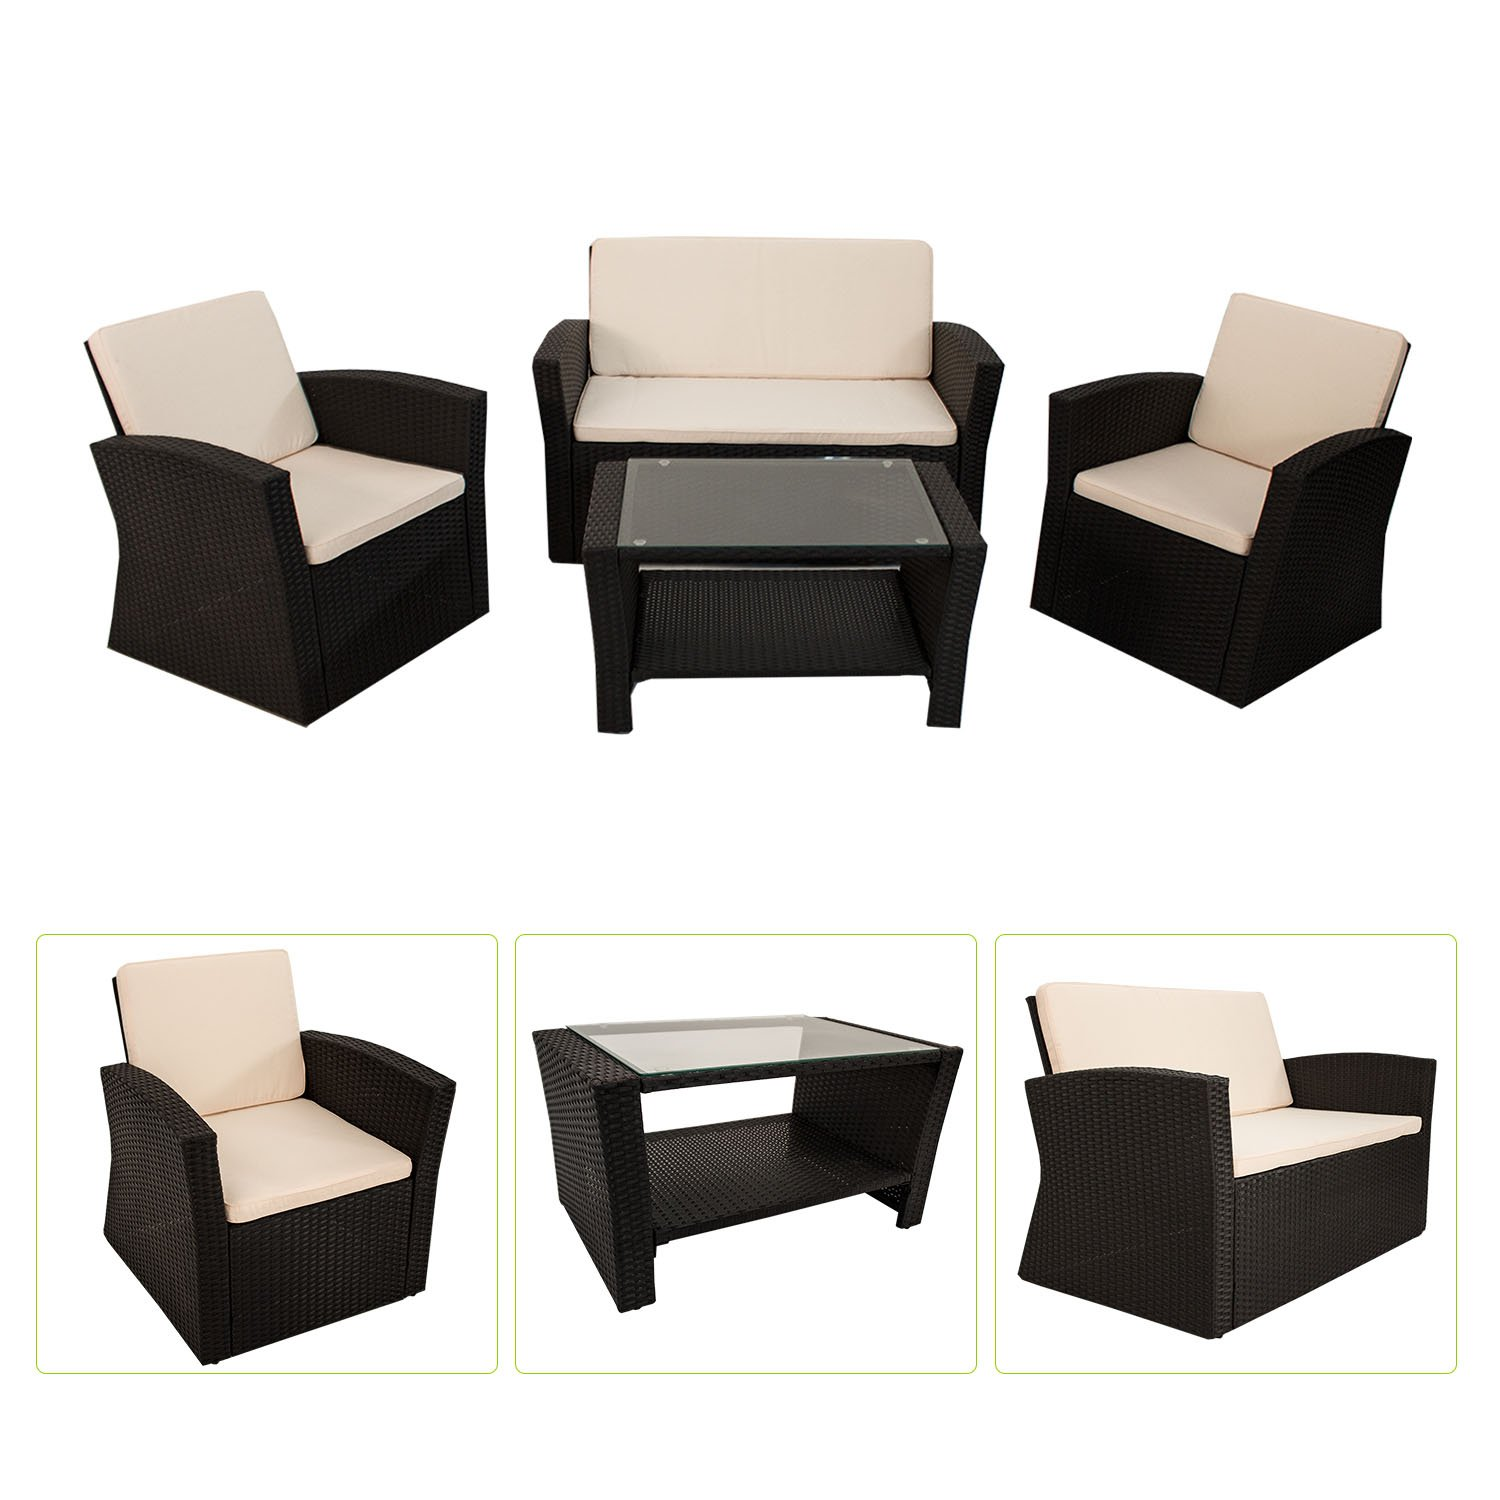 polyrattan sitzgruppe palm beach schwarz g nstig online kaufen. Black Bedroom Furniture Sets. Home Design Ideas